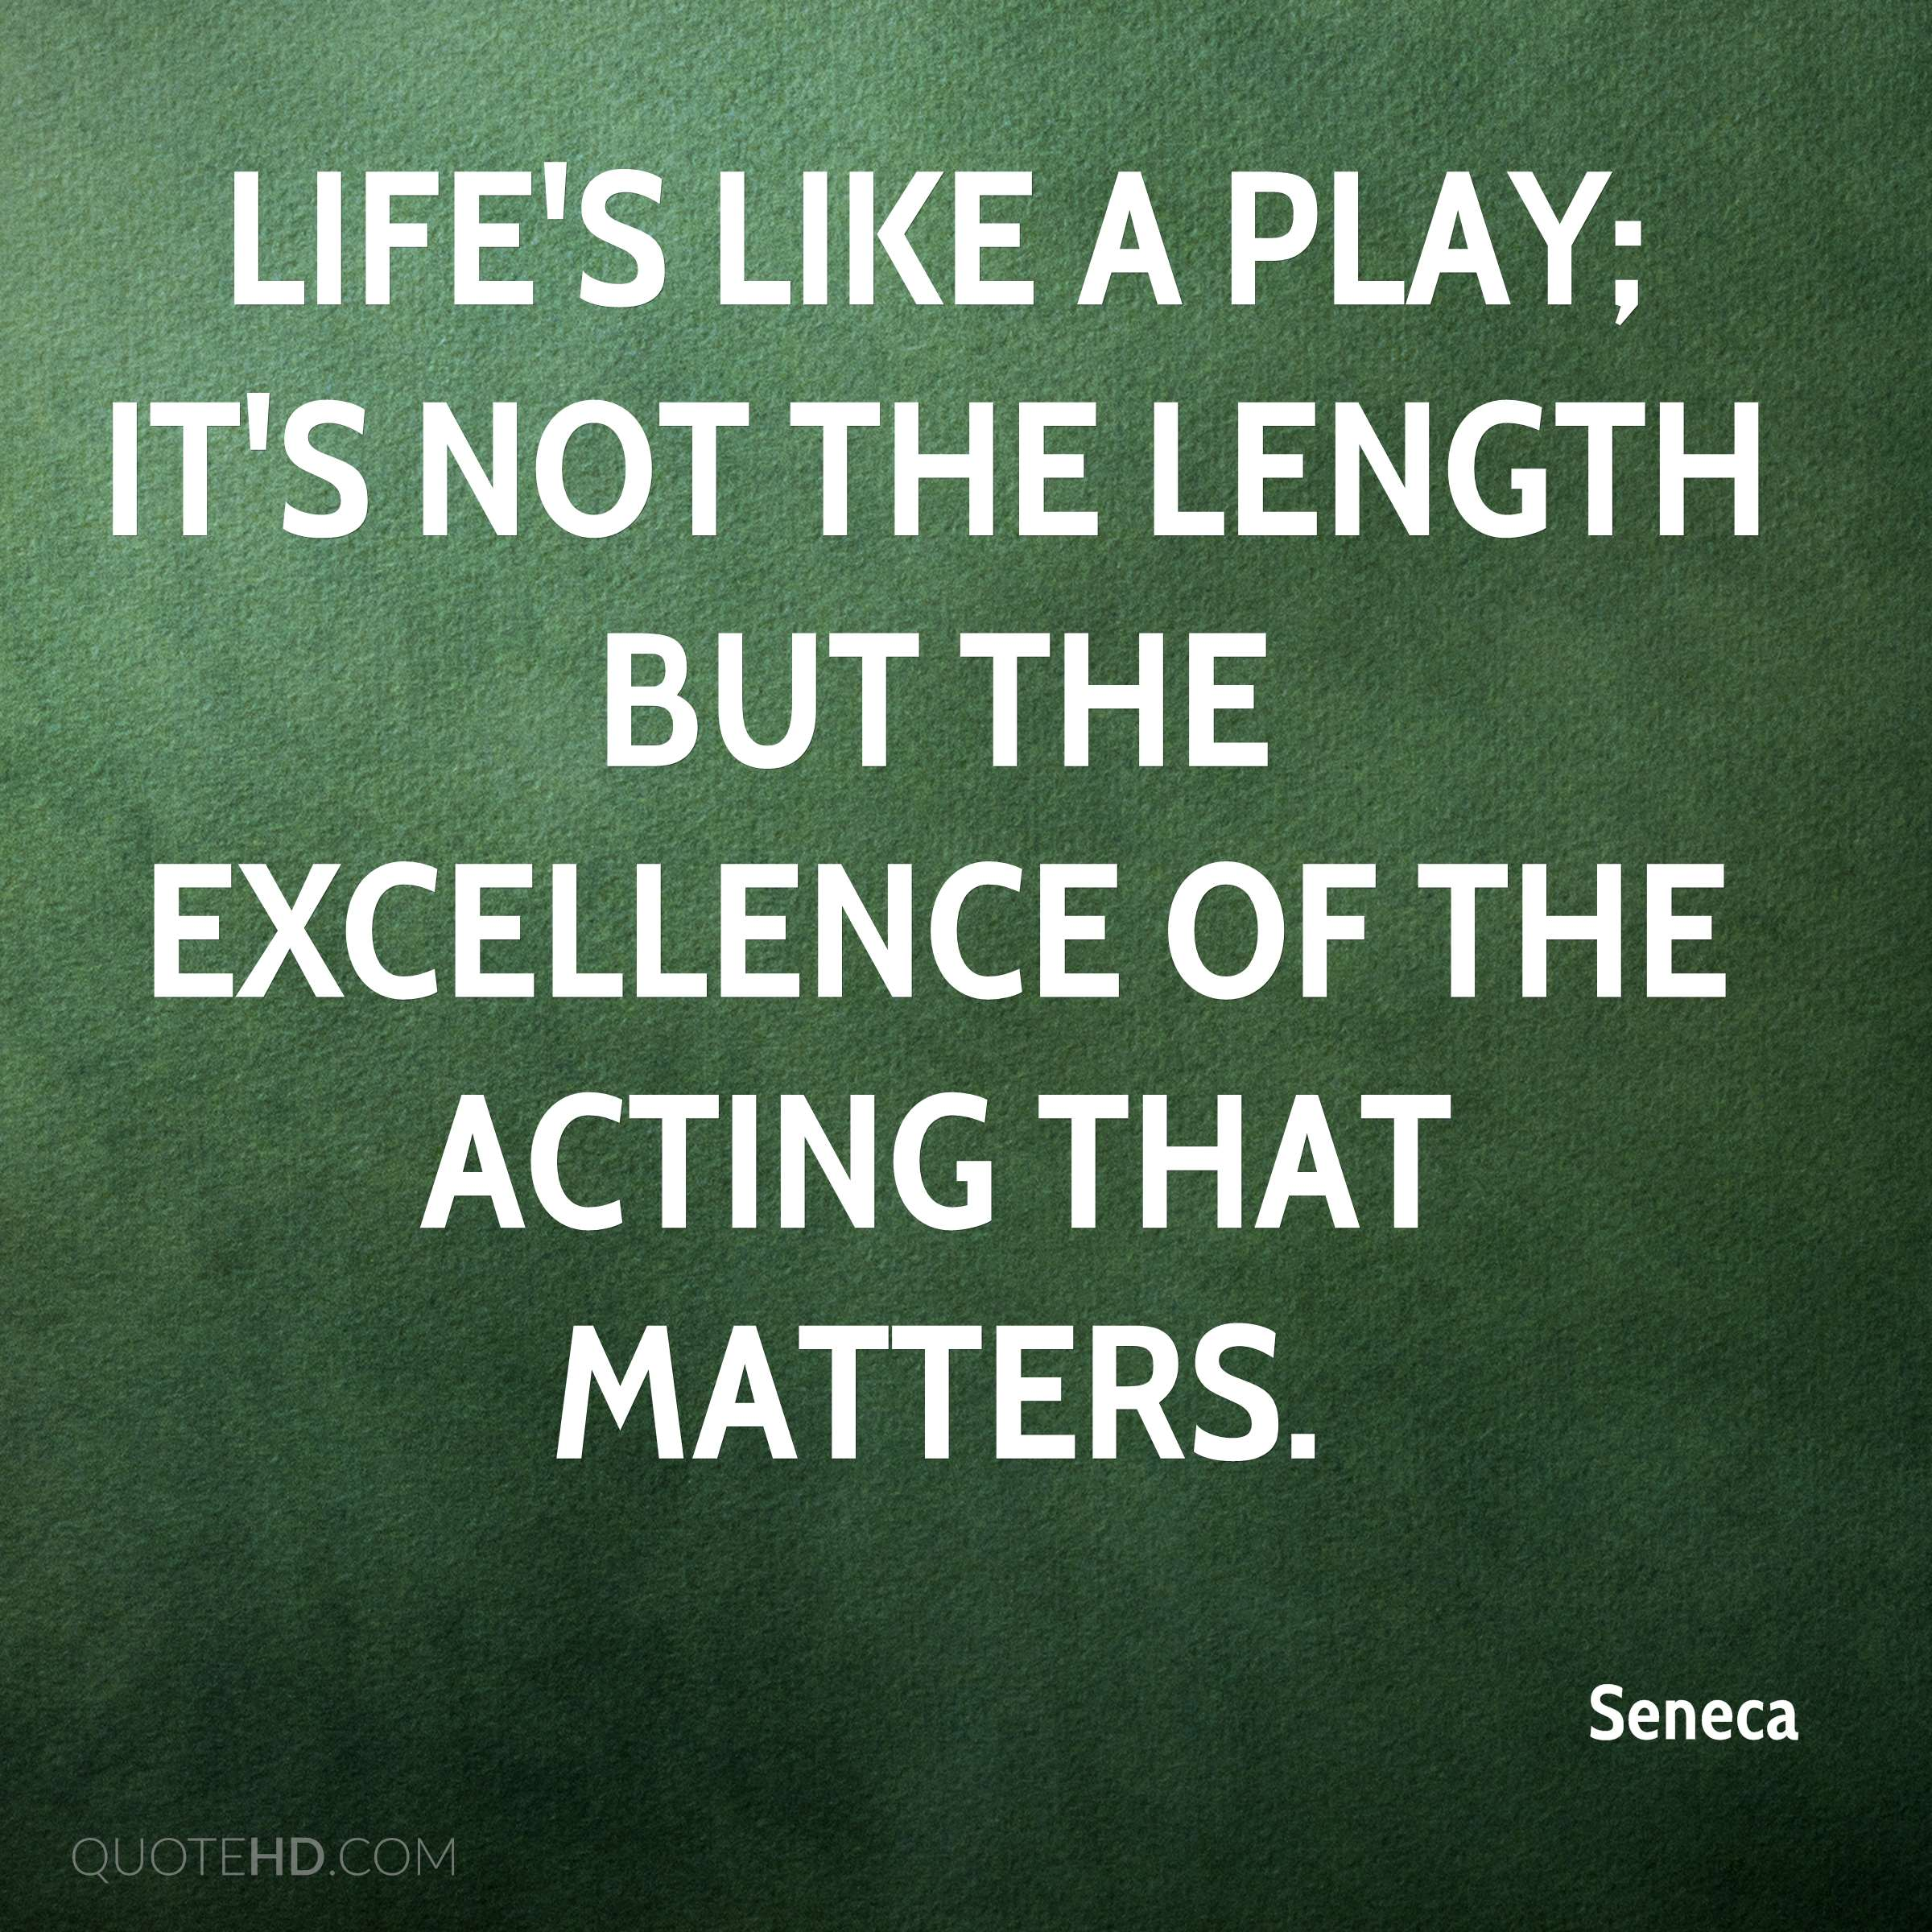 Life's like a play; it's not the length but the excellence of the acting that matters.